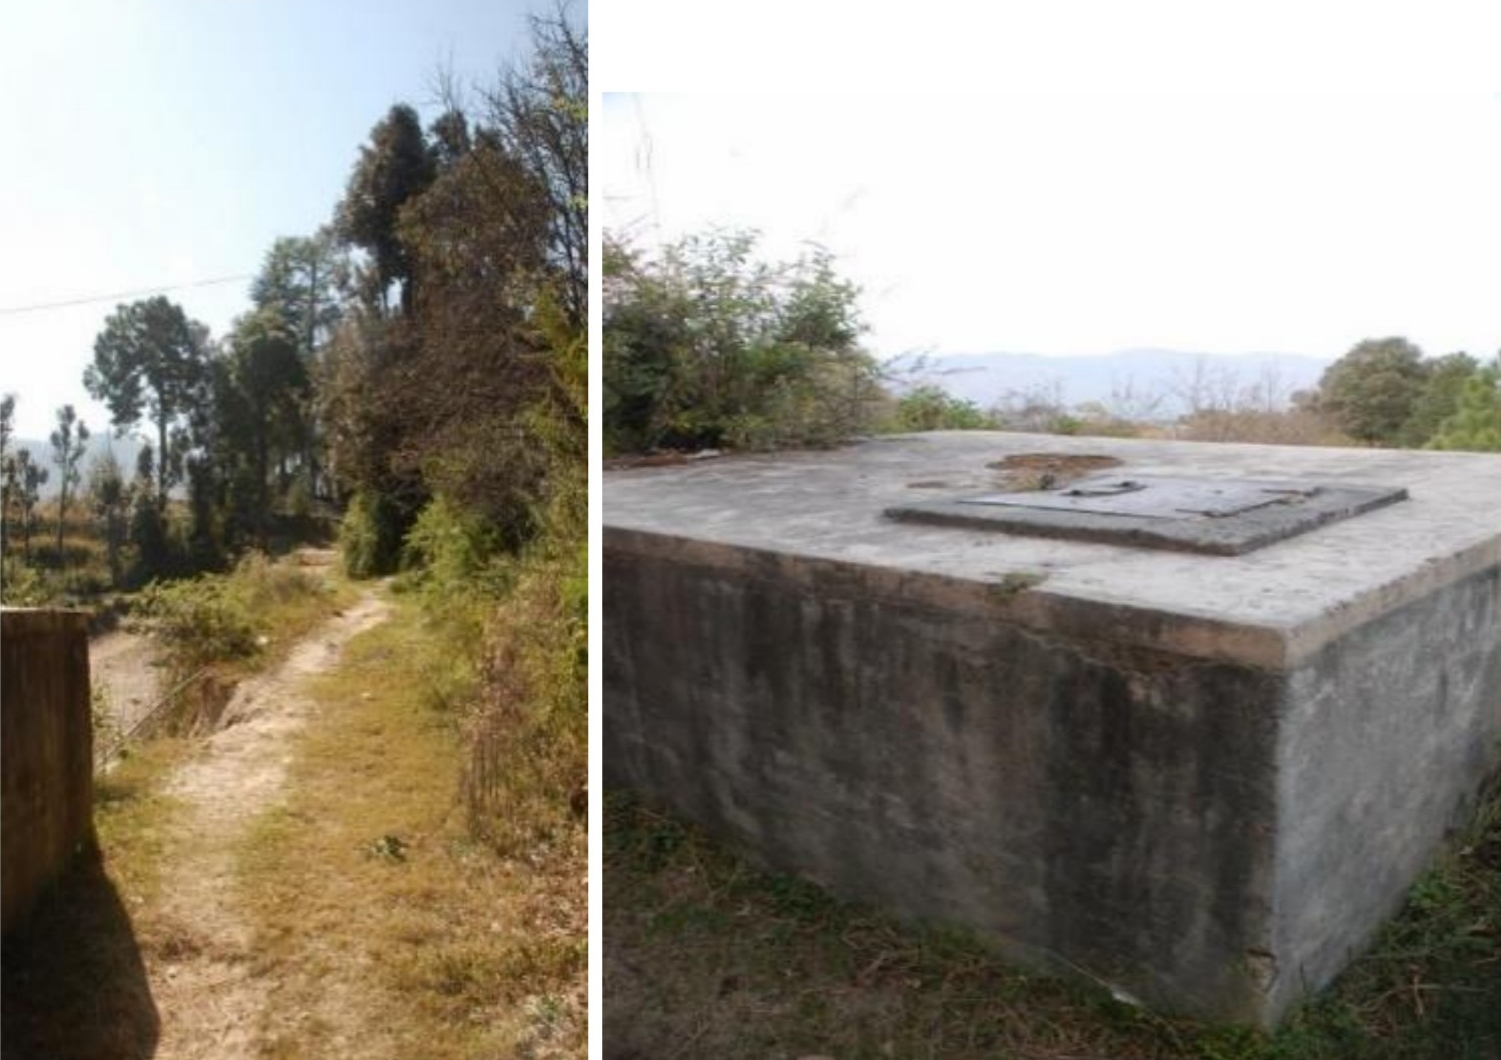 Shows water tank and road adjecent to it before destruction